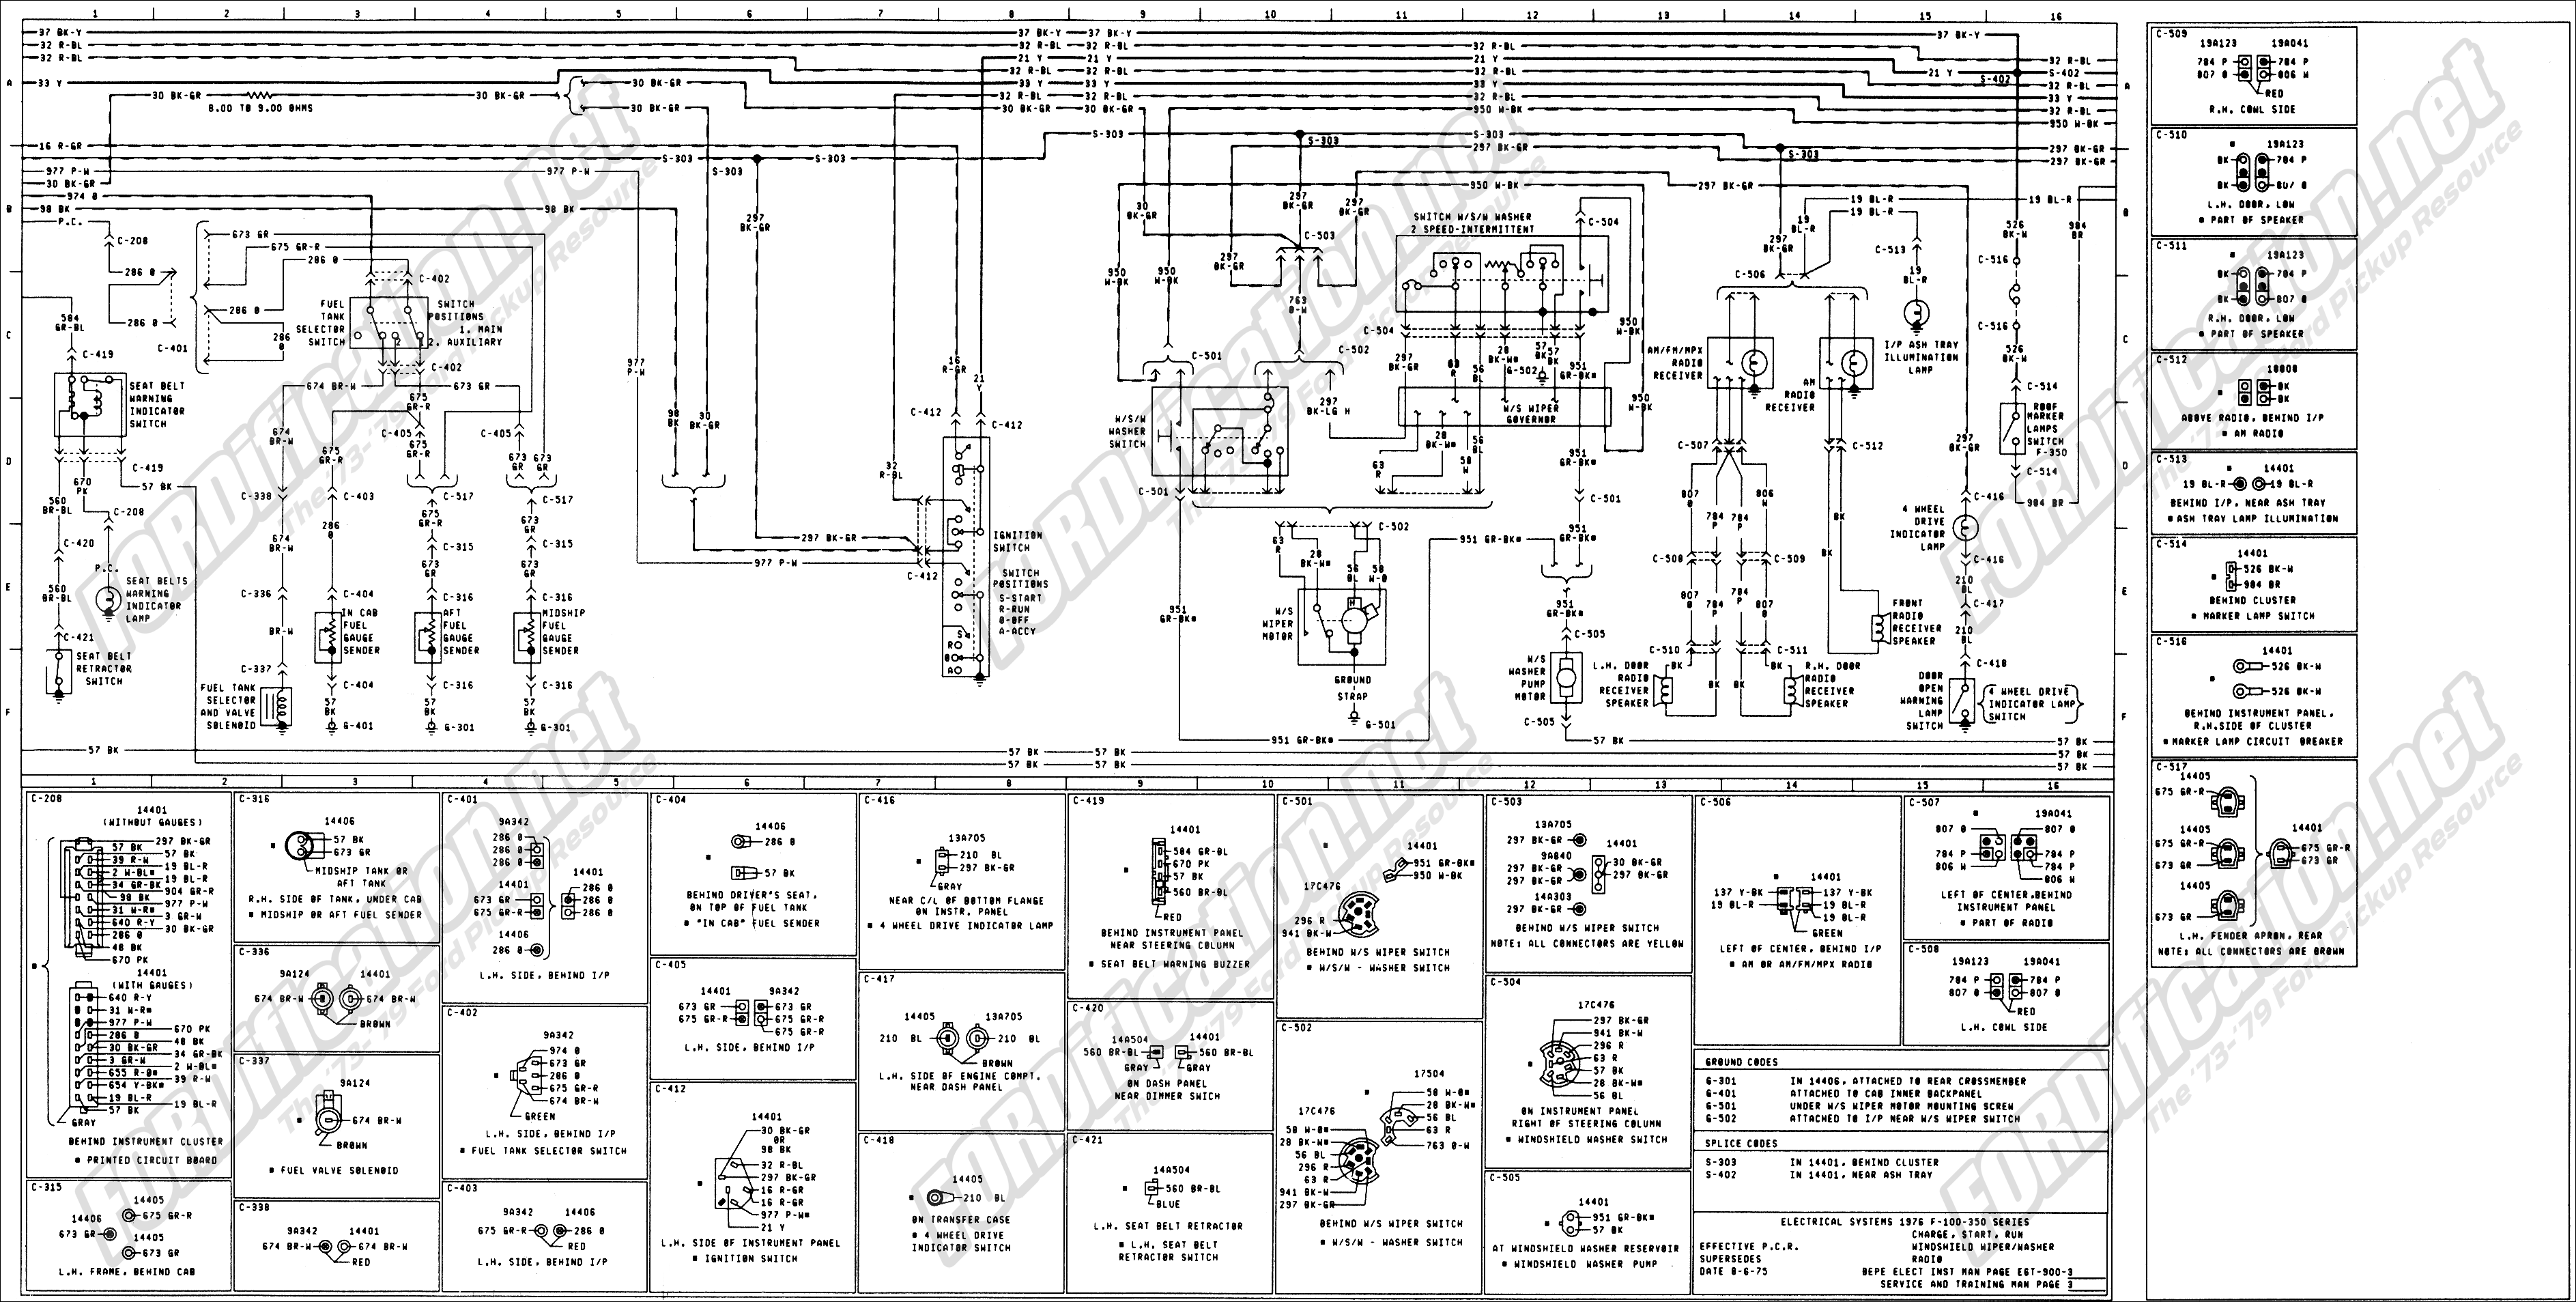 wiring_76master_3of9 1973 1979 ford truck wiring diagrams & schematics fordification net 2011 ford ranger wiring diagram at edmiracle.co